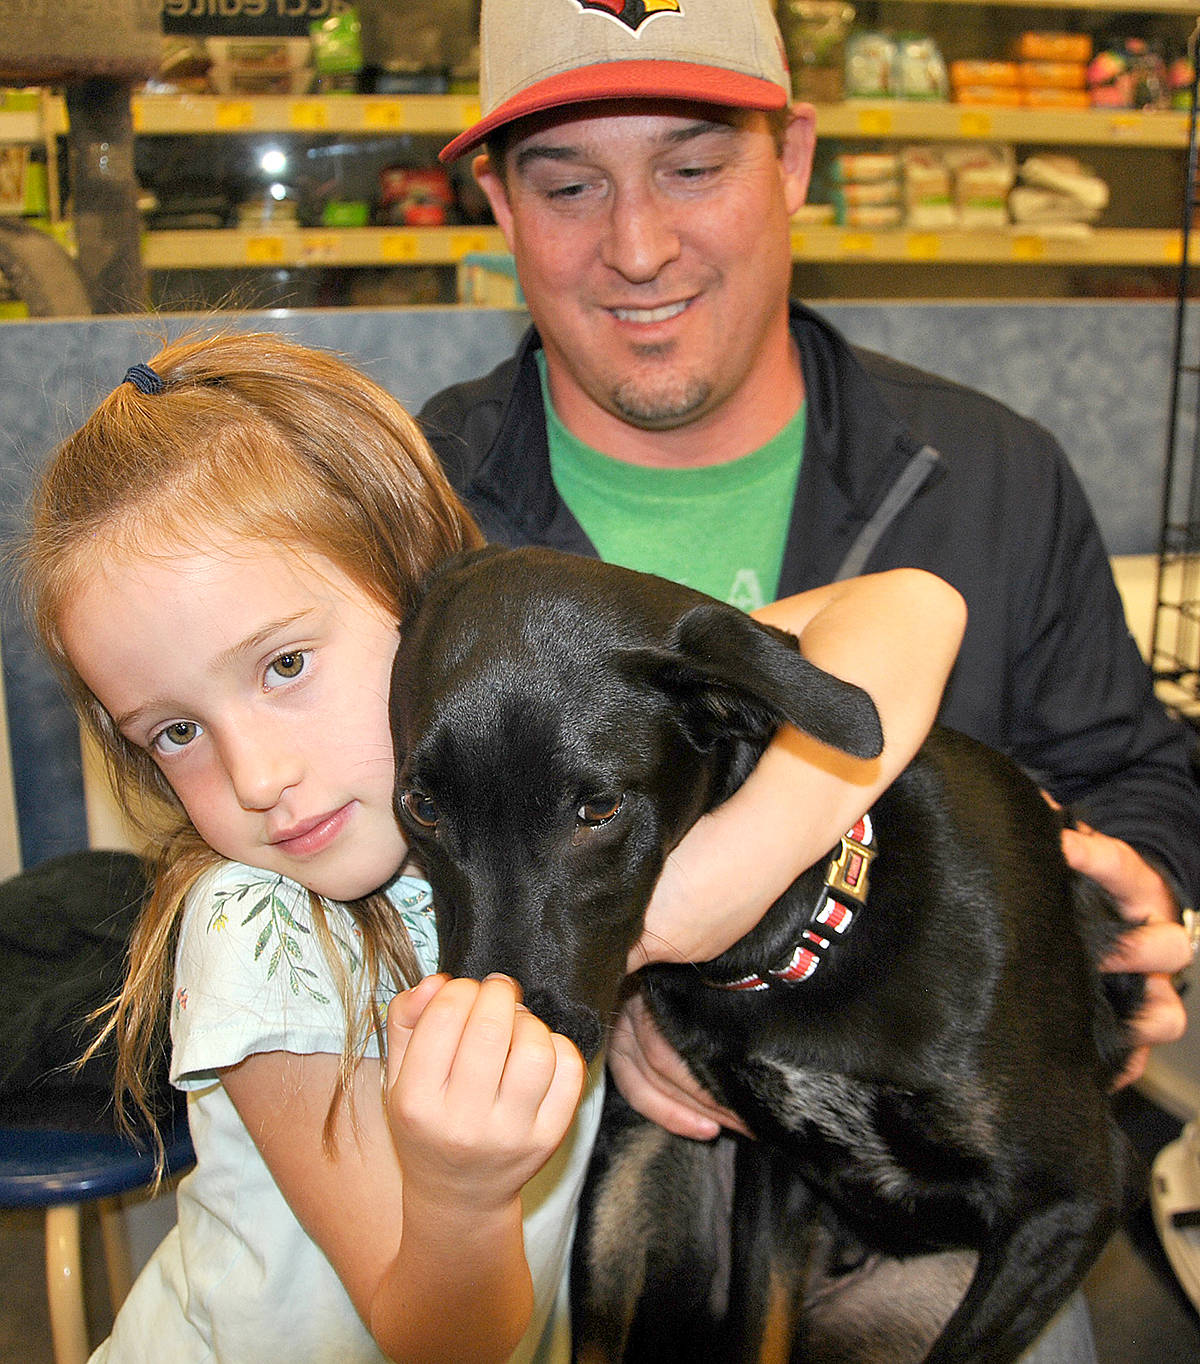 Girl foregoes birthday gifts to help homeless dogs